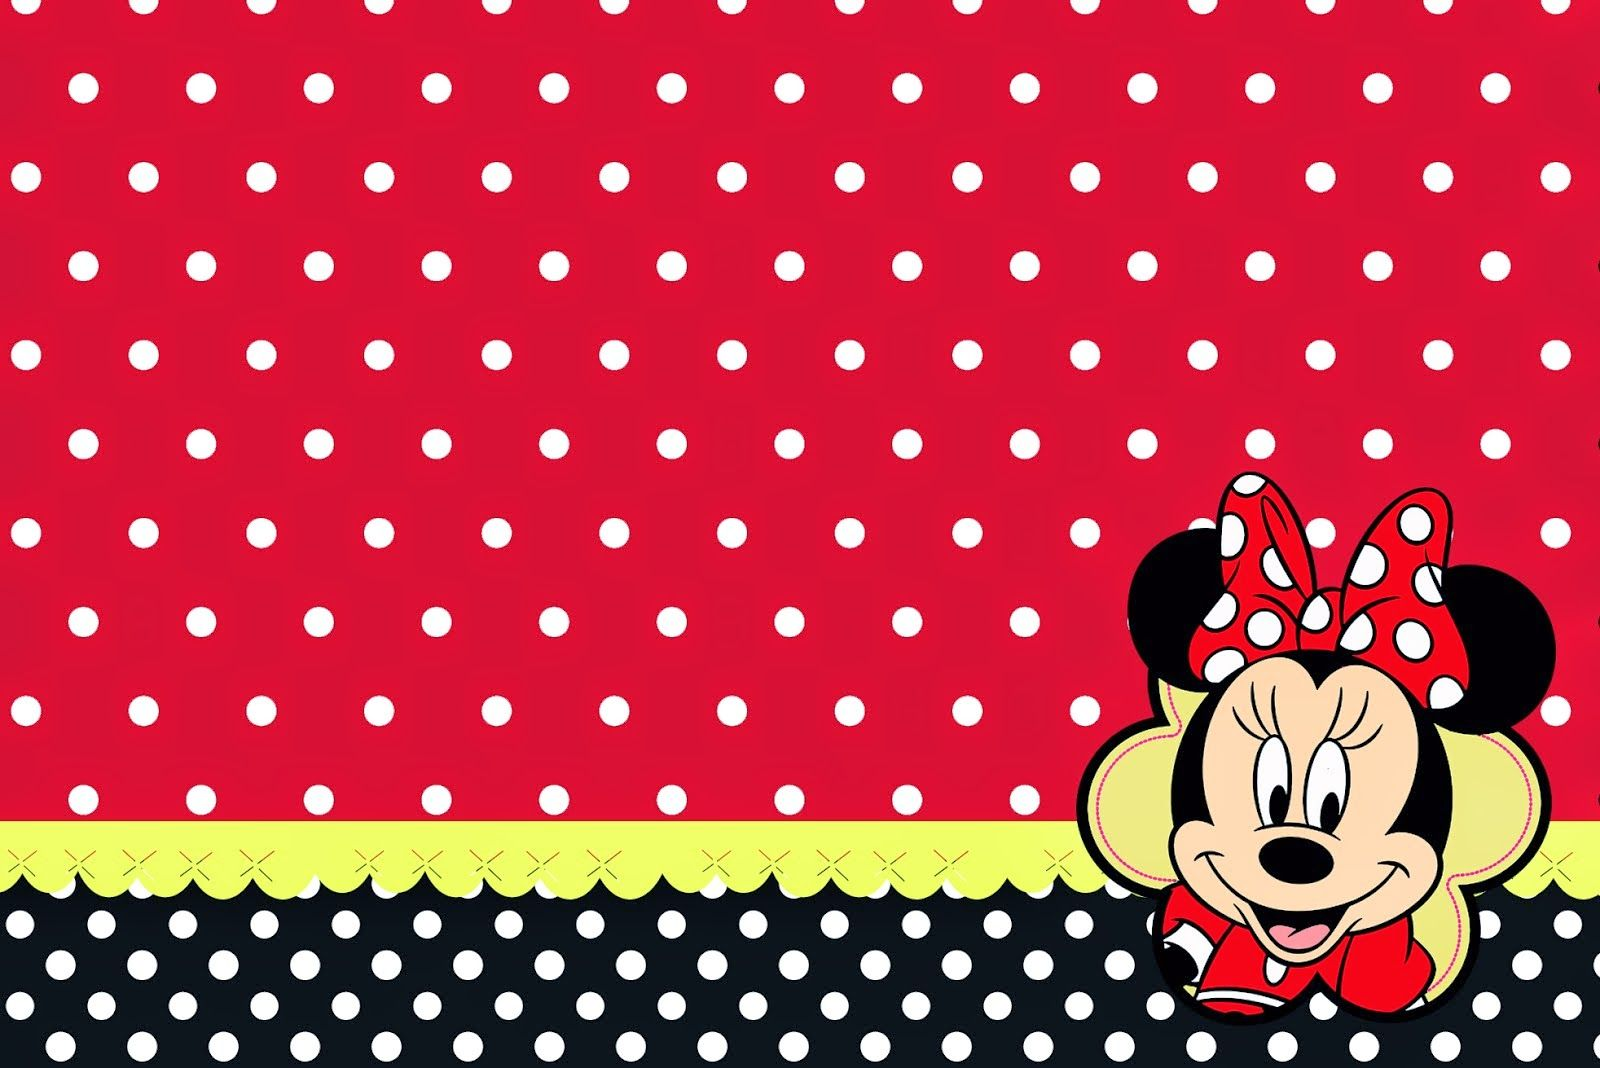 Pin by ☆Queenie★ on ii♥︎Minnie(^_−)−☆ Red minnie mouse